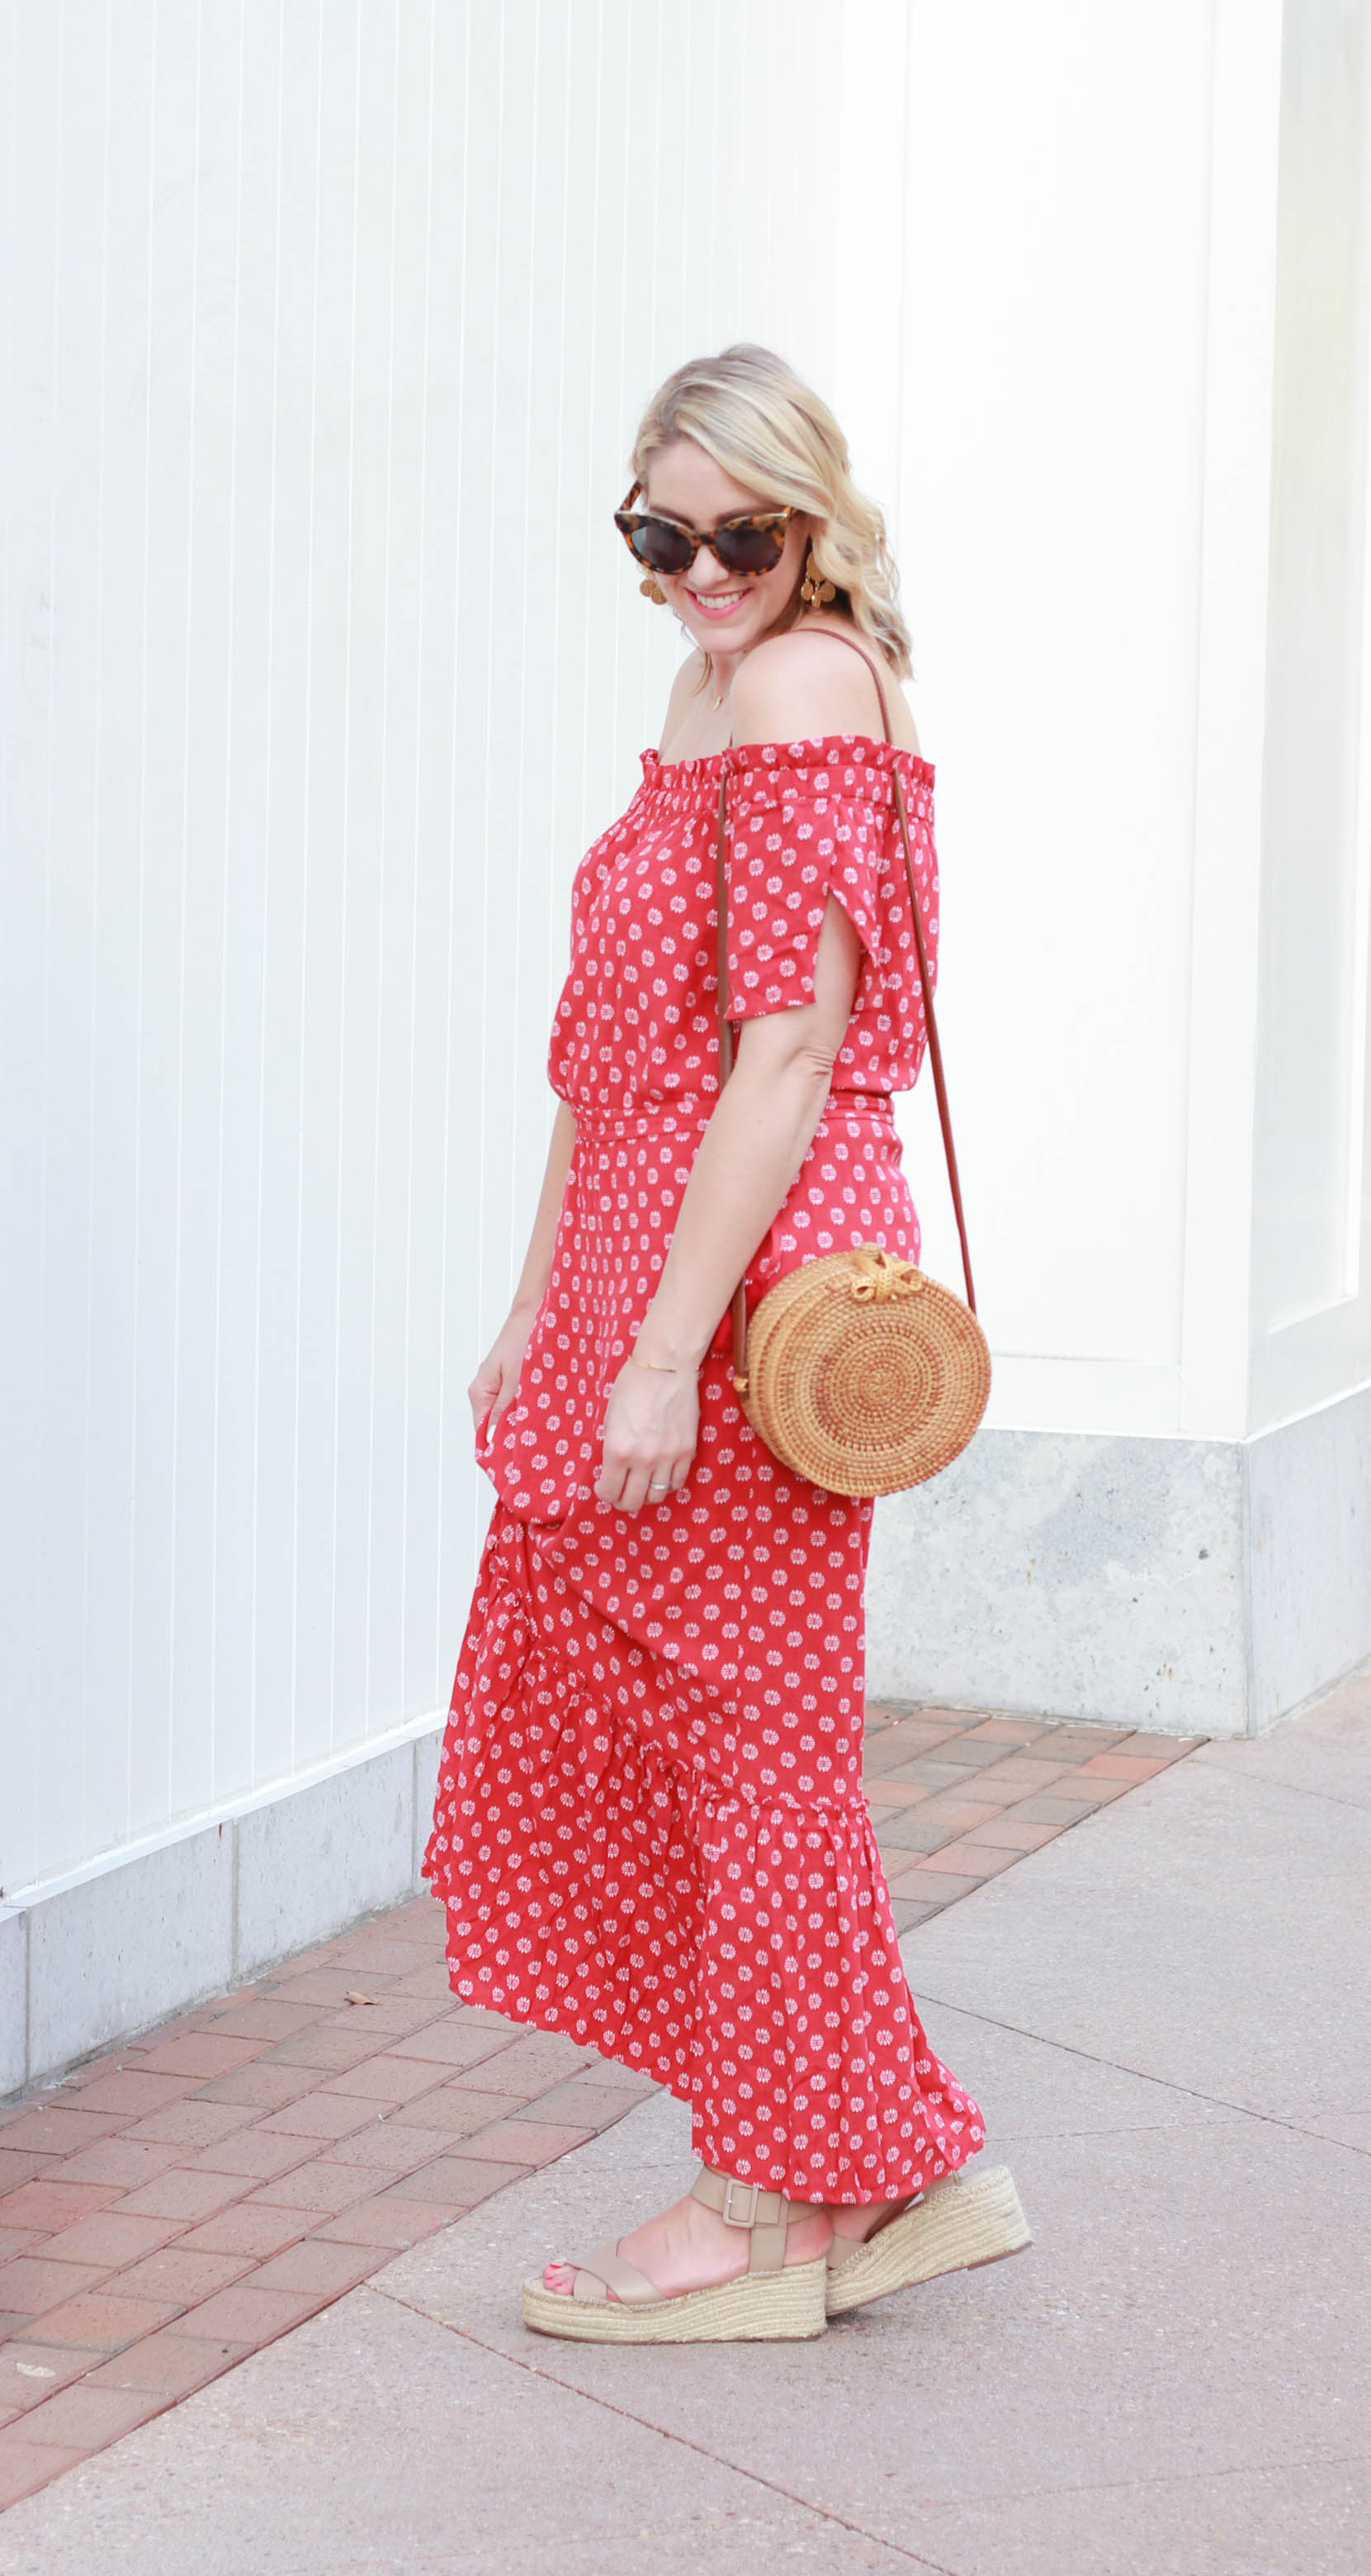 red floral maxi dress #maxidress #summerstyle #bohostyle #styleblogger